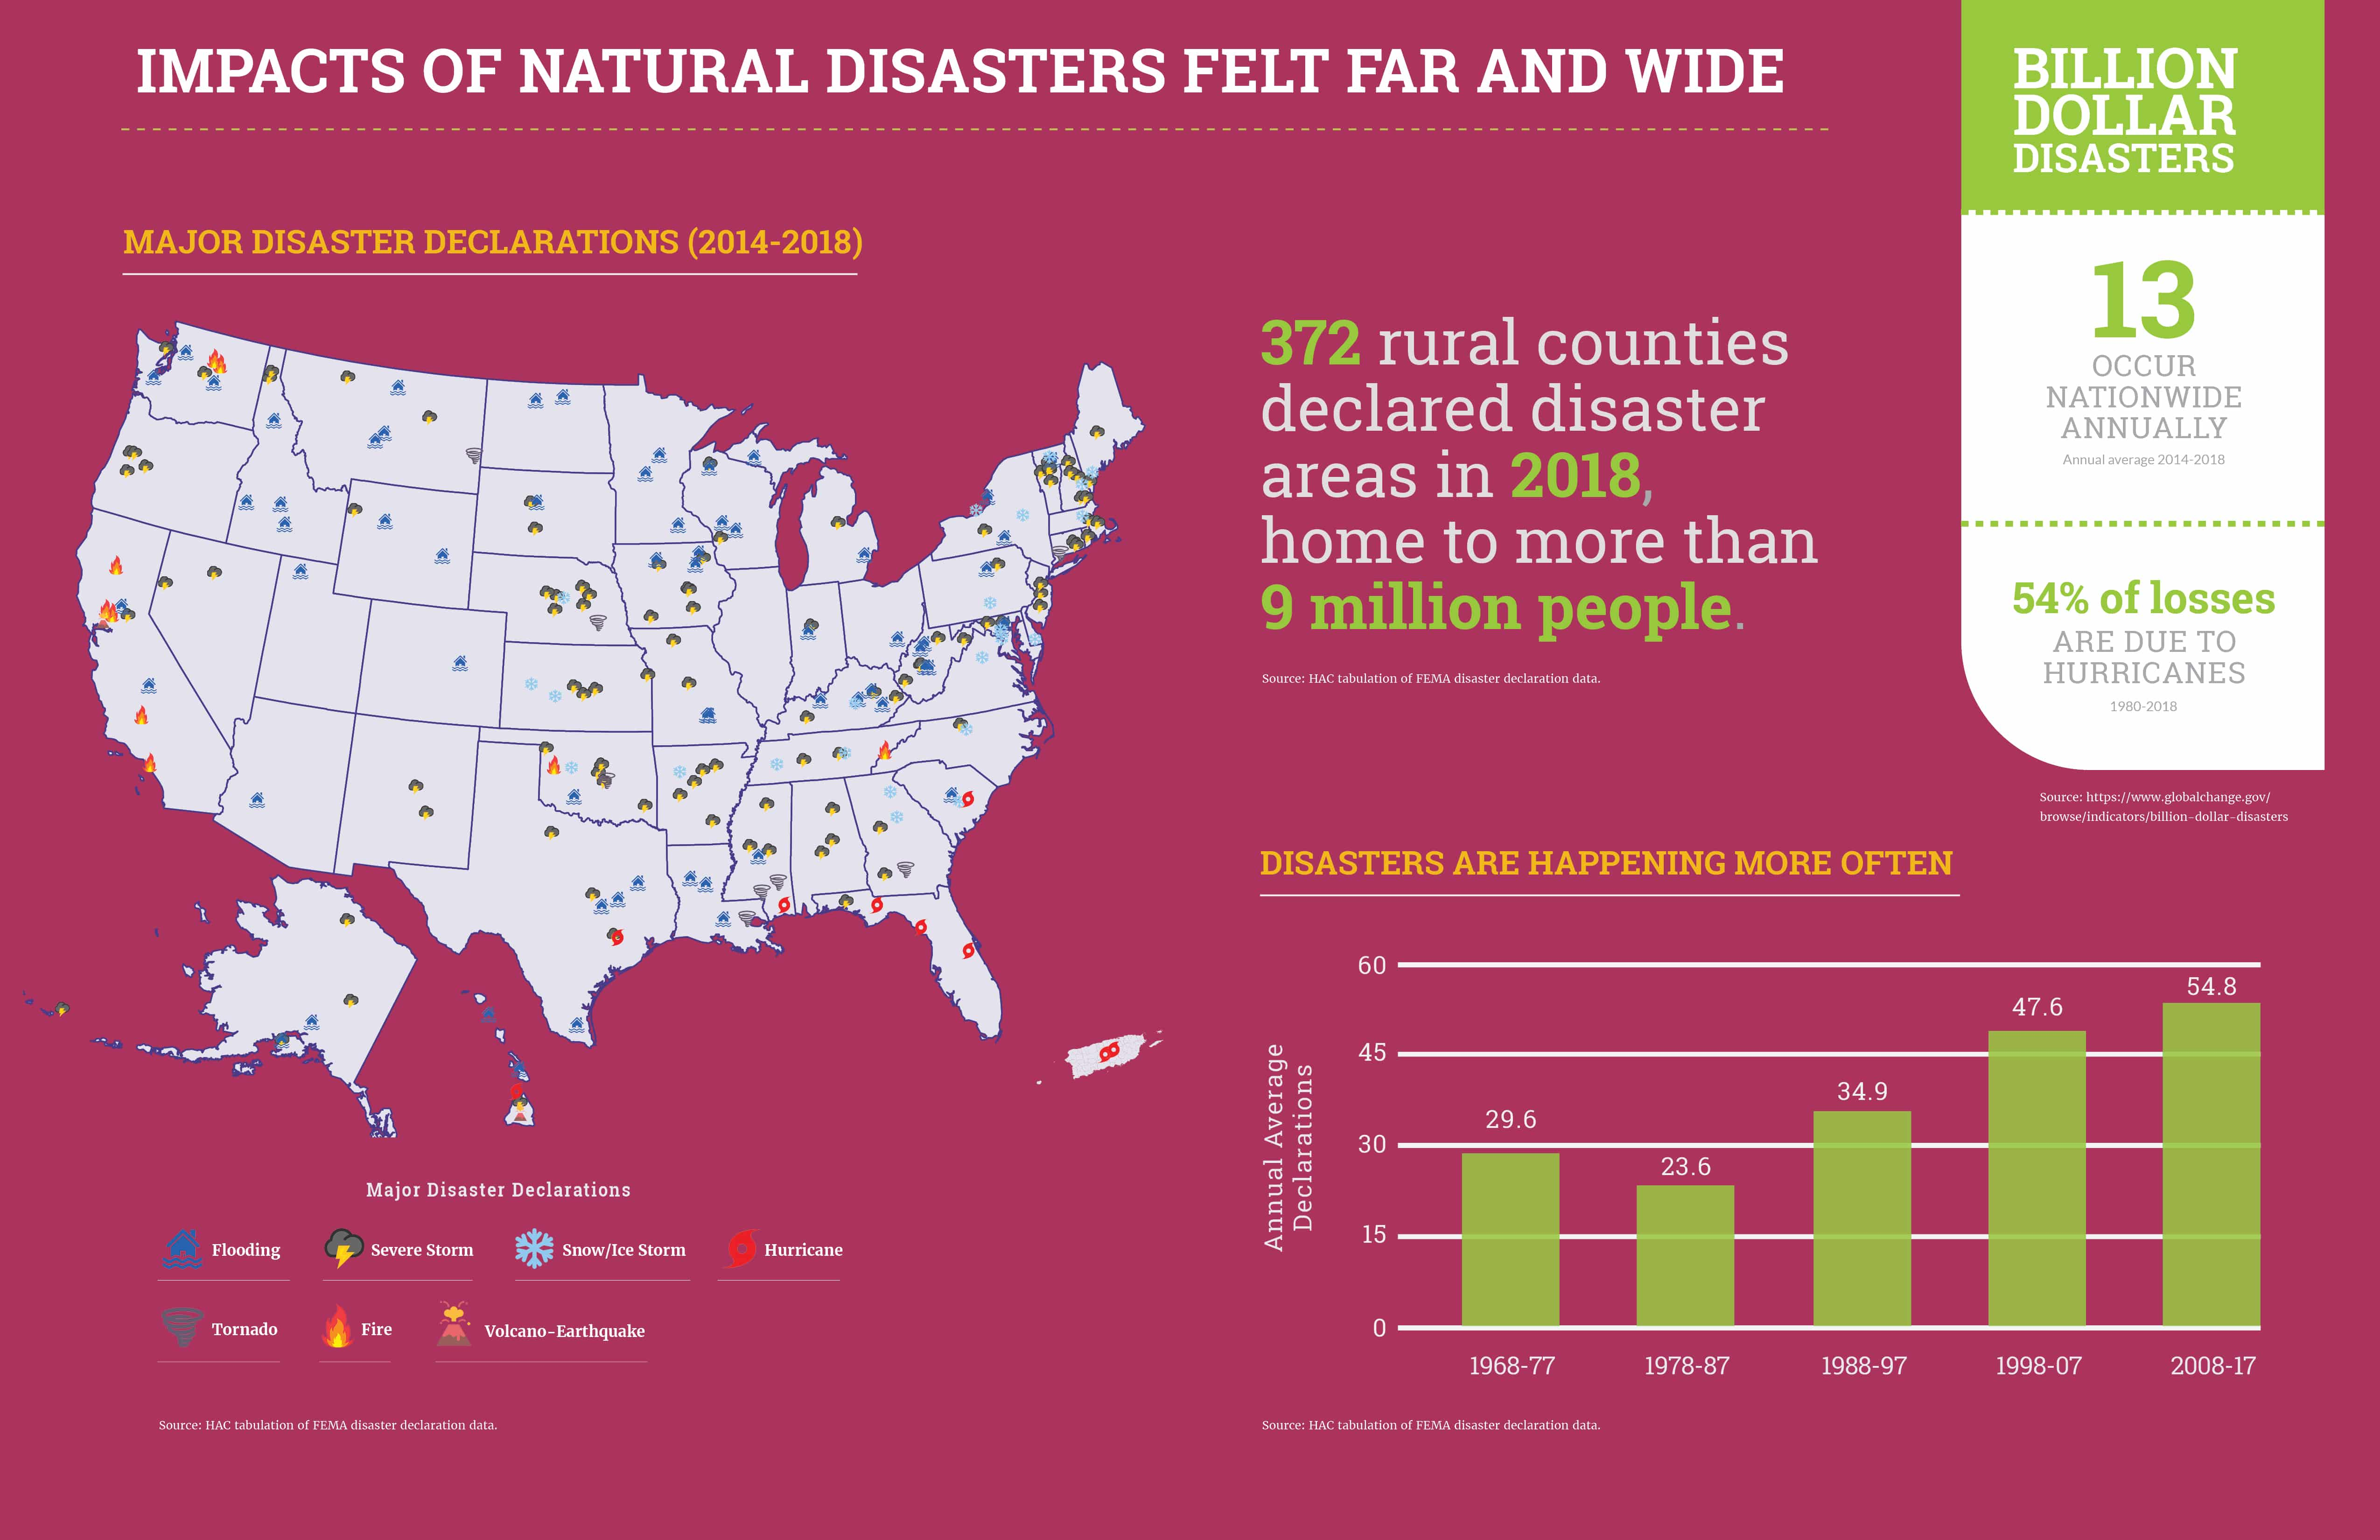 Impacts of Disaster Felt Far and Wide